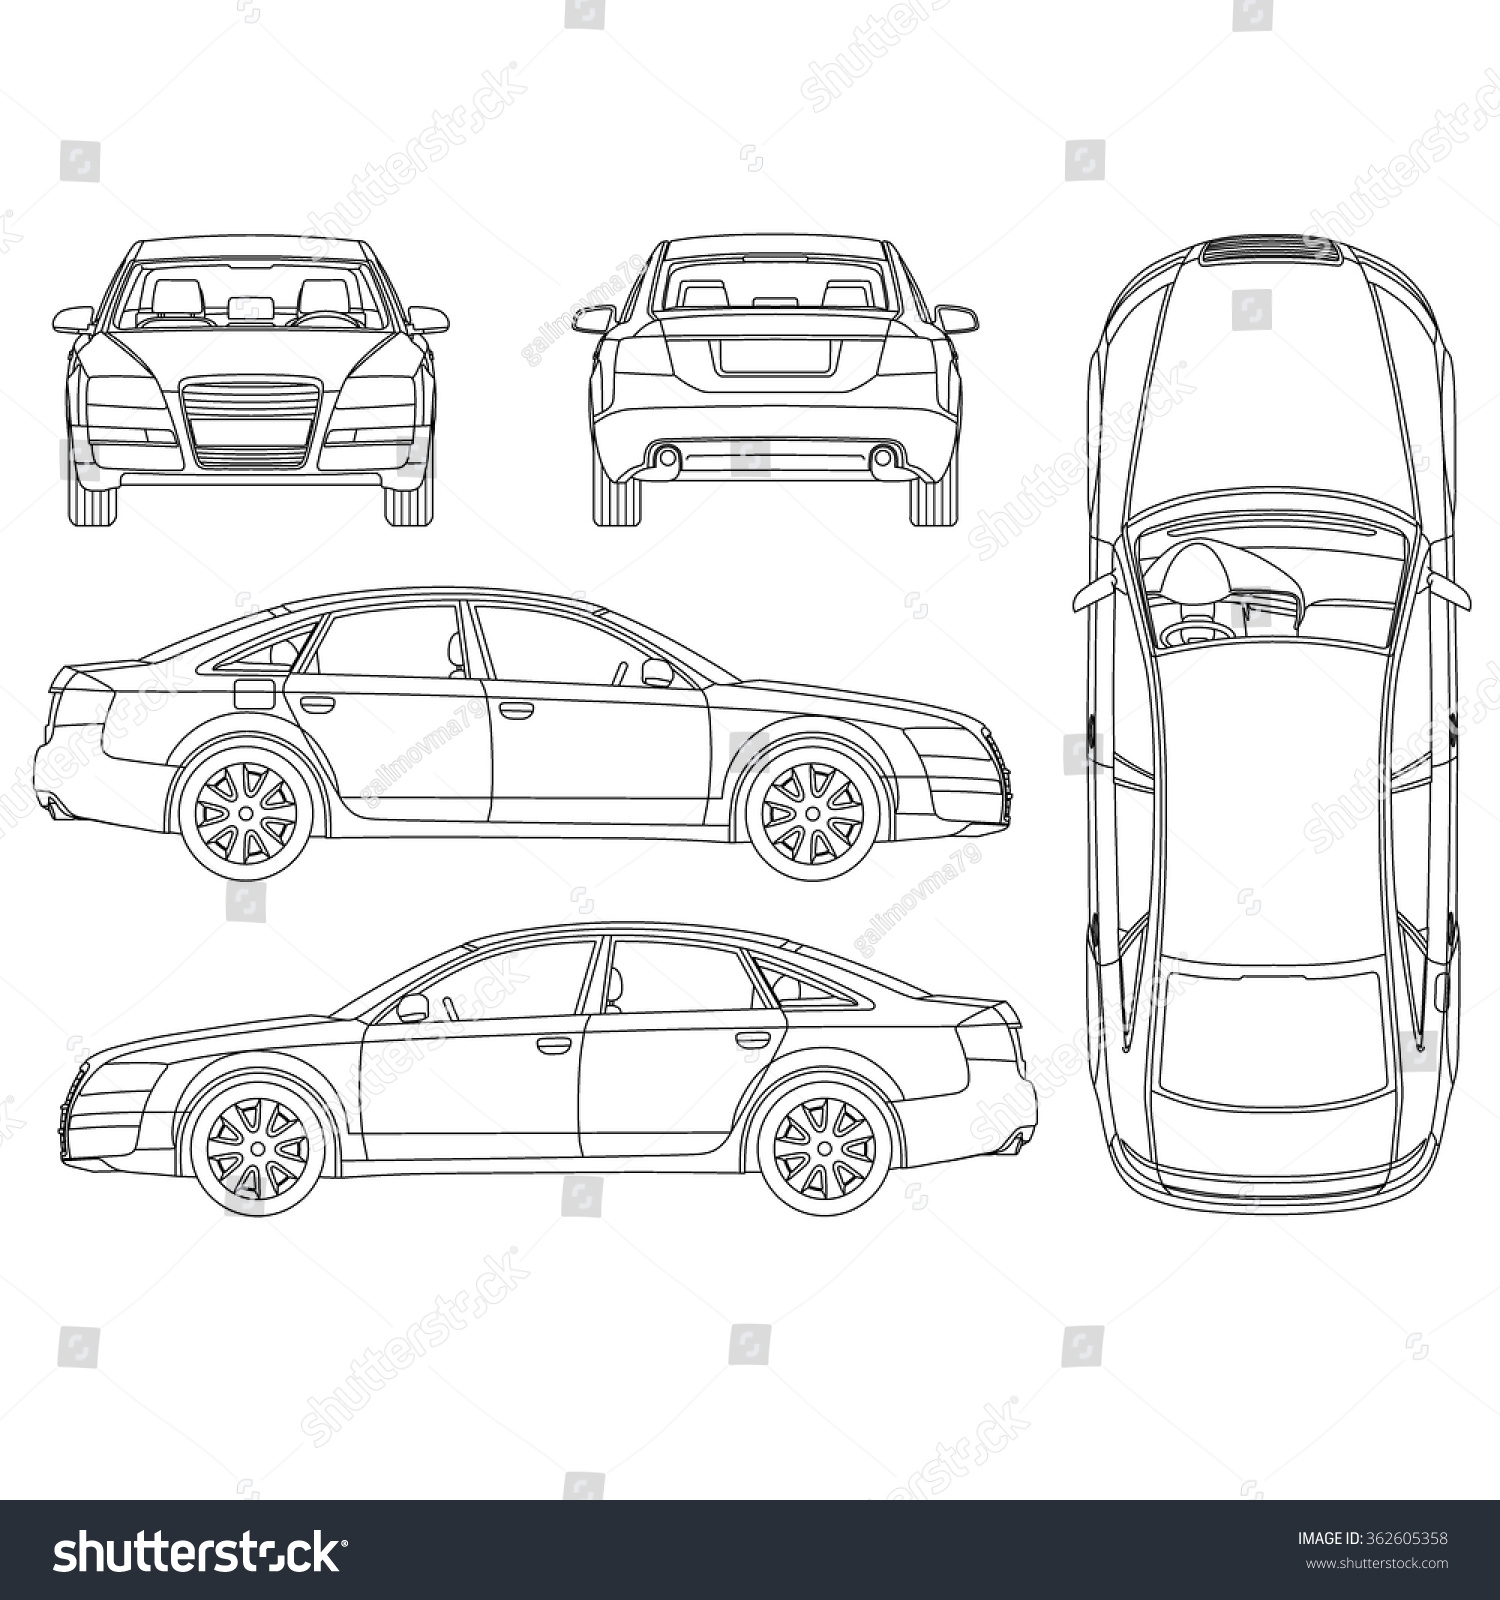 royalty free car line art all view four view top. Black Bedroom Furniture Sets. Home Design Ideas